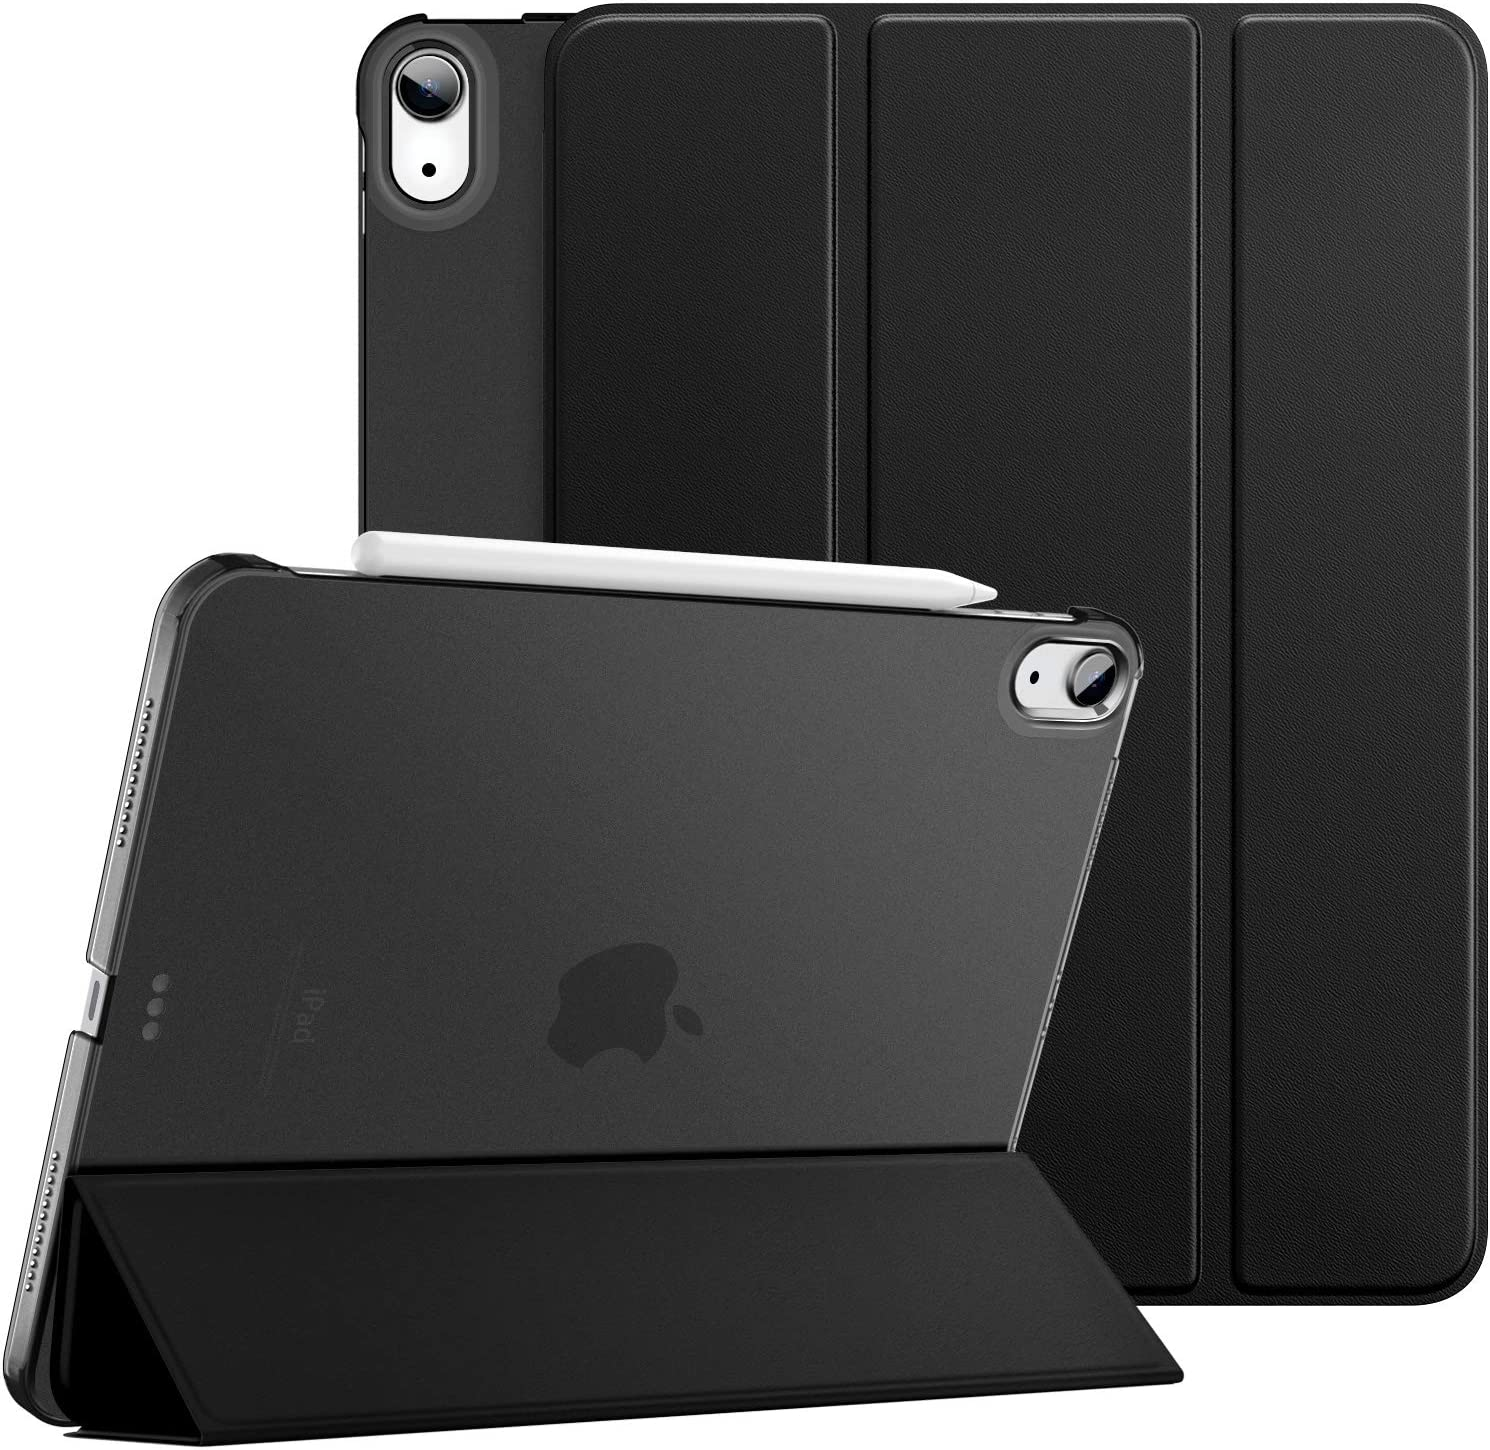 Dadanism iPad Air 4th Generation Case 2020 iPad 10.9 Case, Slim Smart Shell Protective Stand Cover with Translucent Frosted Back, Auto Wake/Sleep, Black